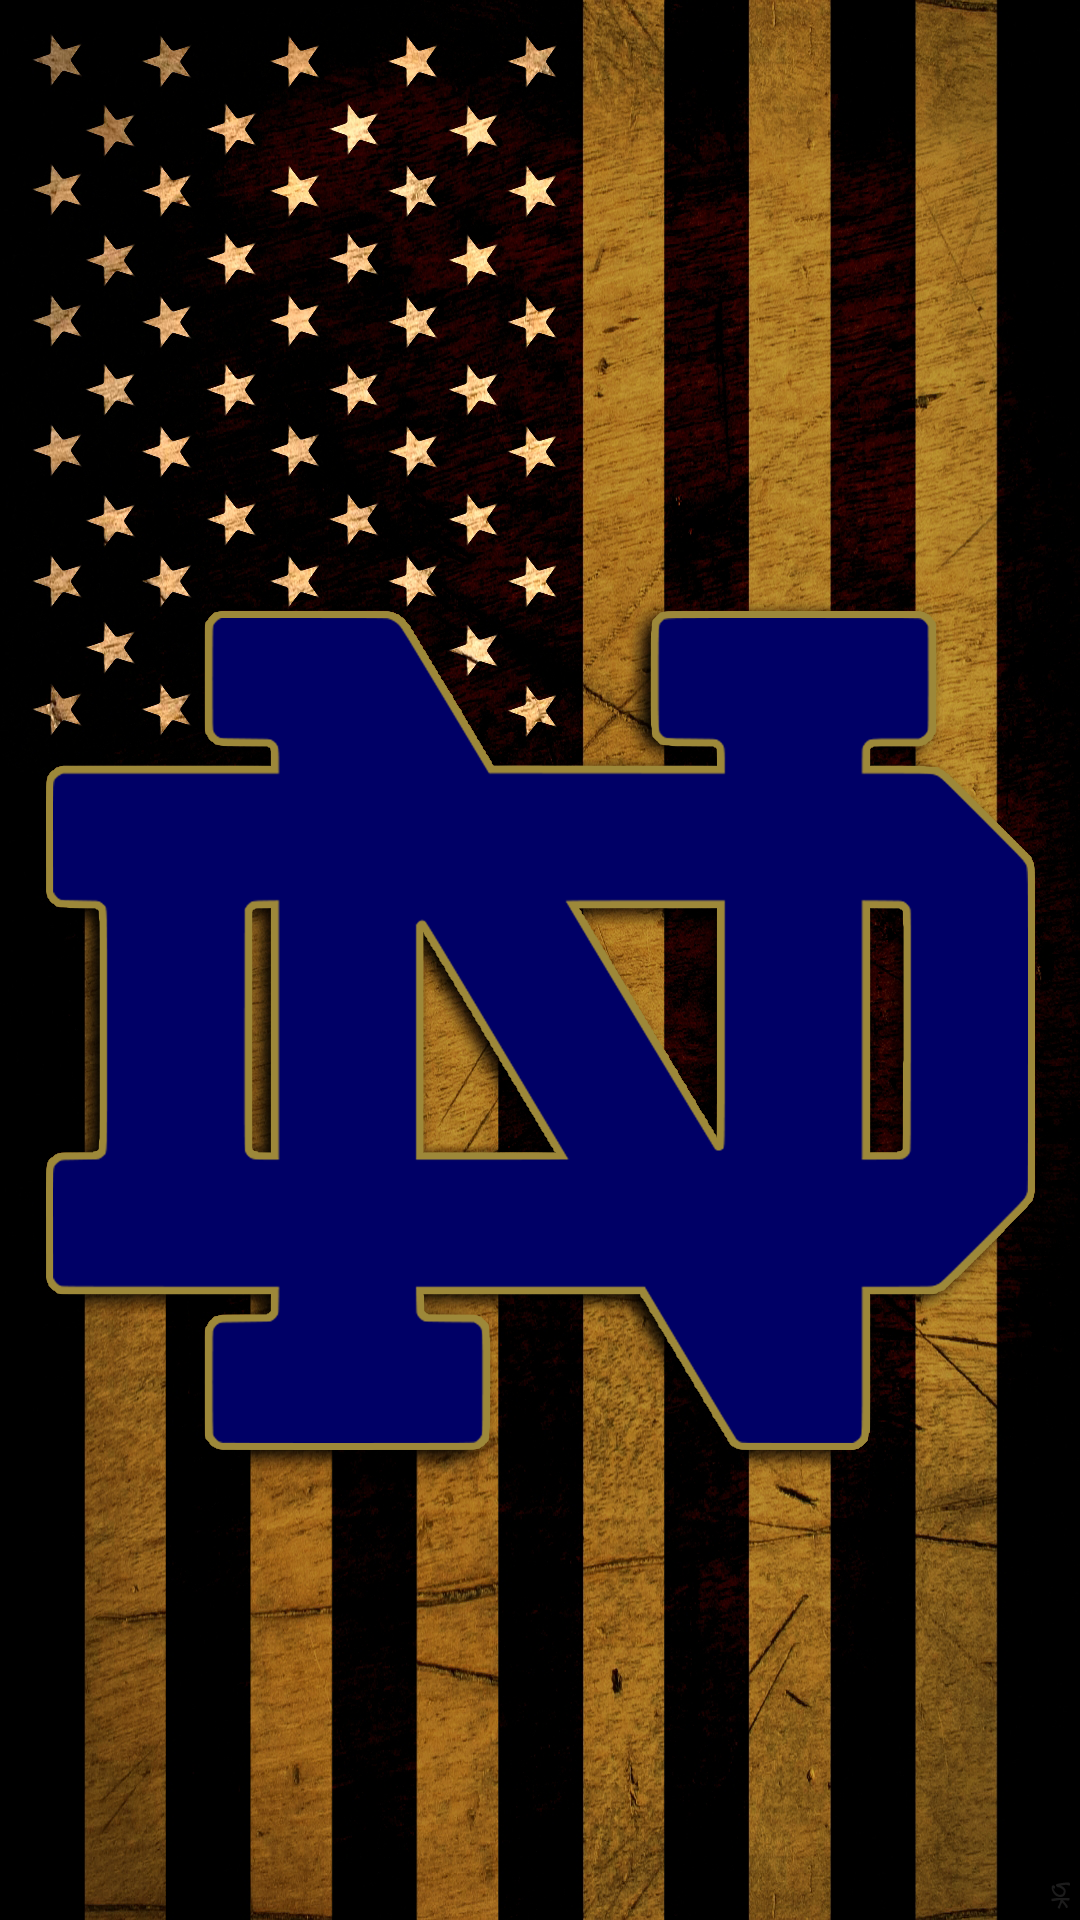 Notre Dame Fighting Irish 03 Png 585925 1080 1920 Notre Dame Wallpaper Fighting Irish Football Notre Dame Fighting Irish